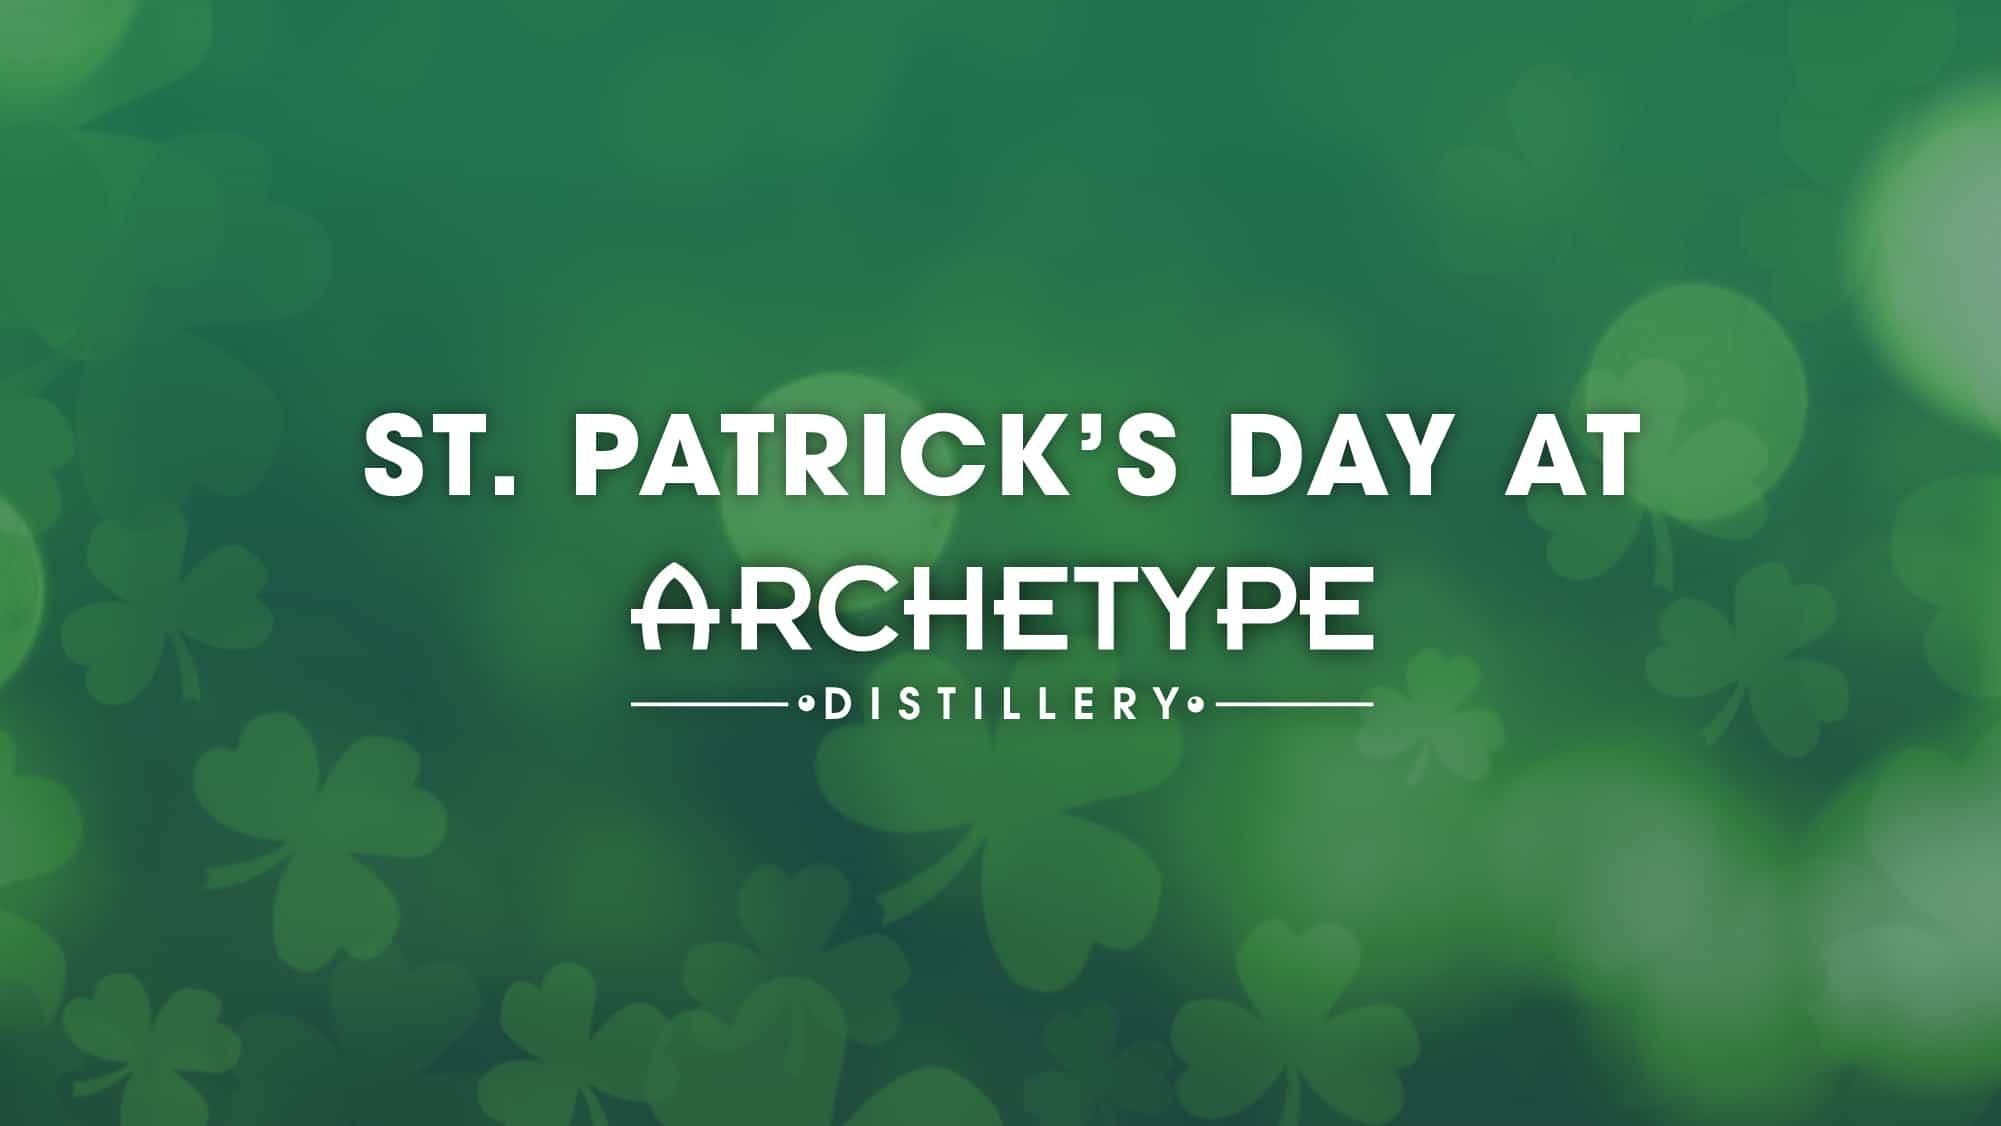 St. Patrick's Day at Archetype Distillery